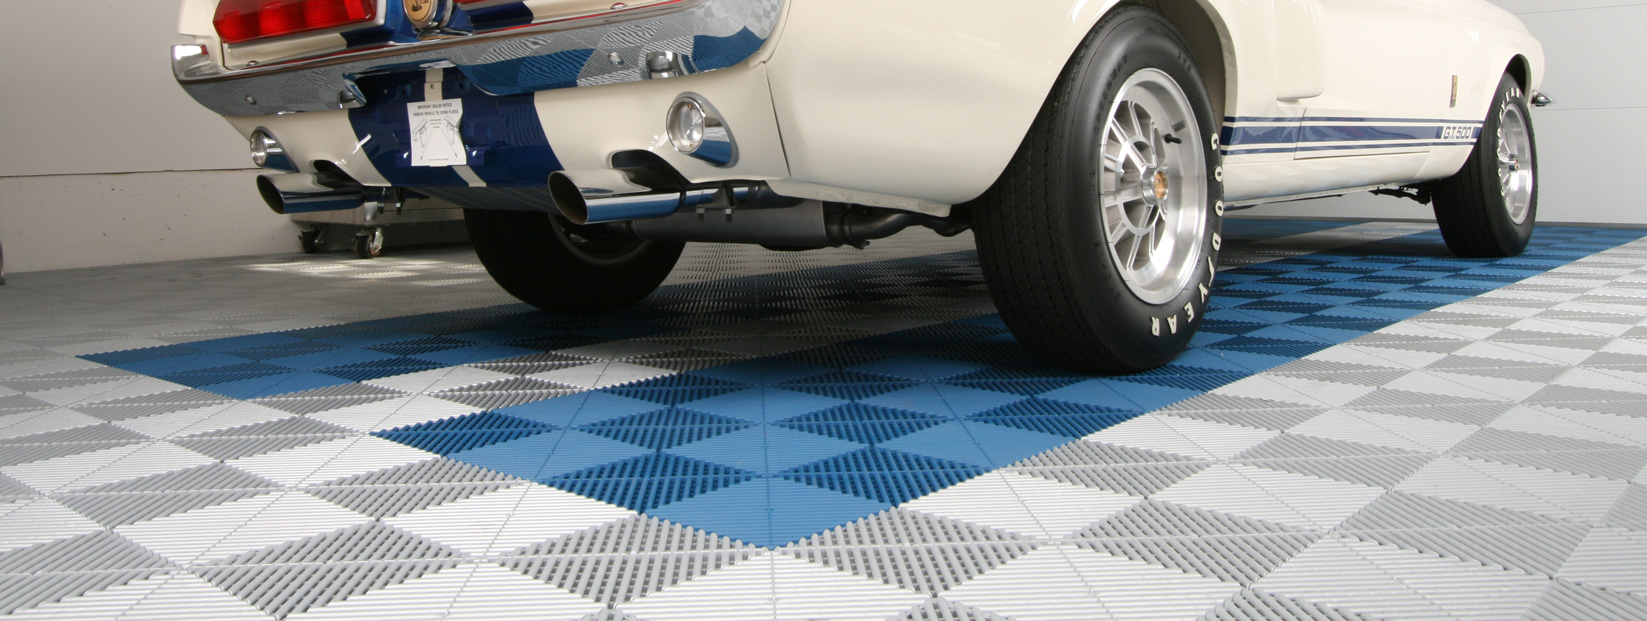 Garage Flooring Tiles Monmouth County